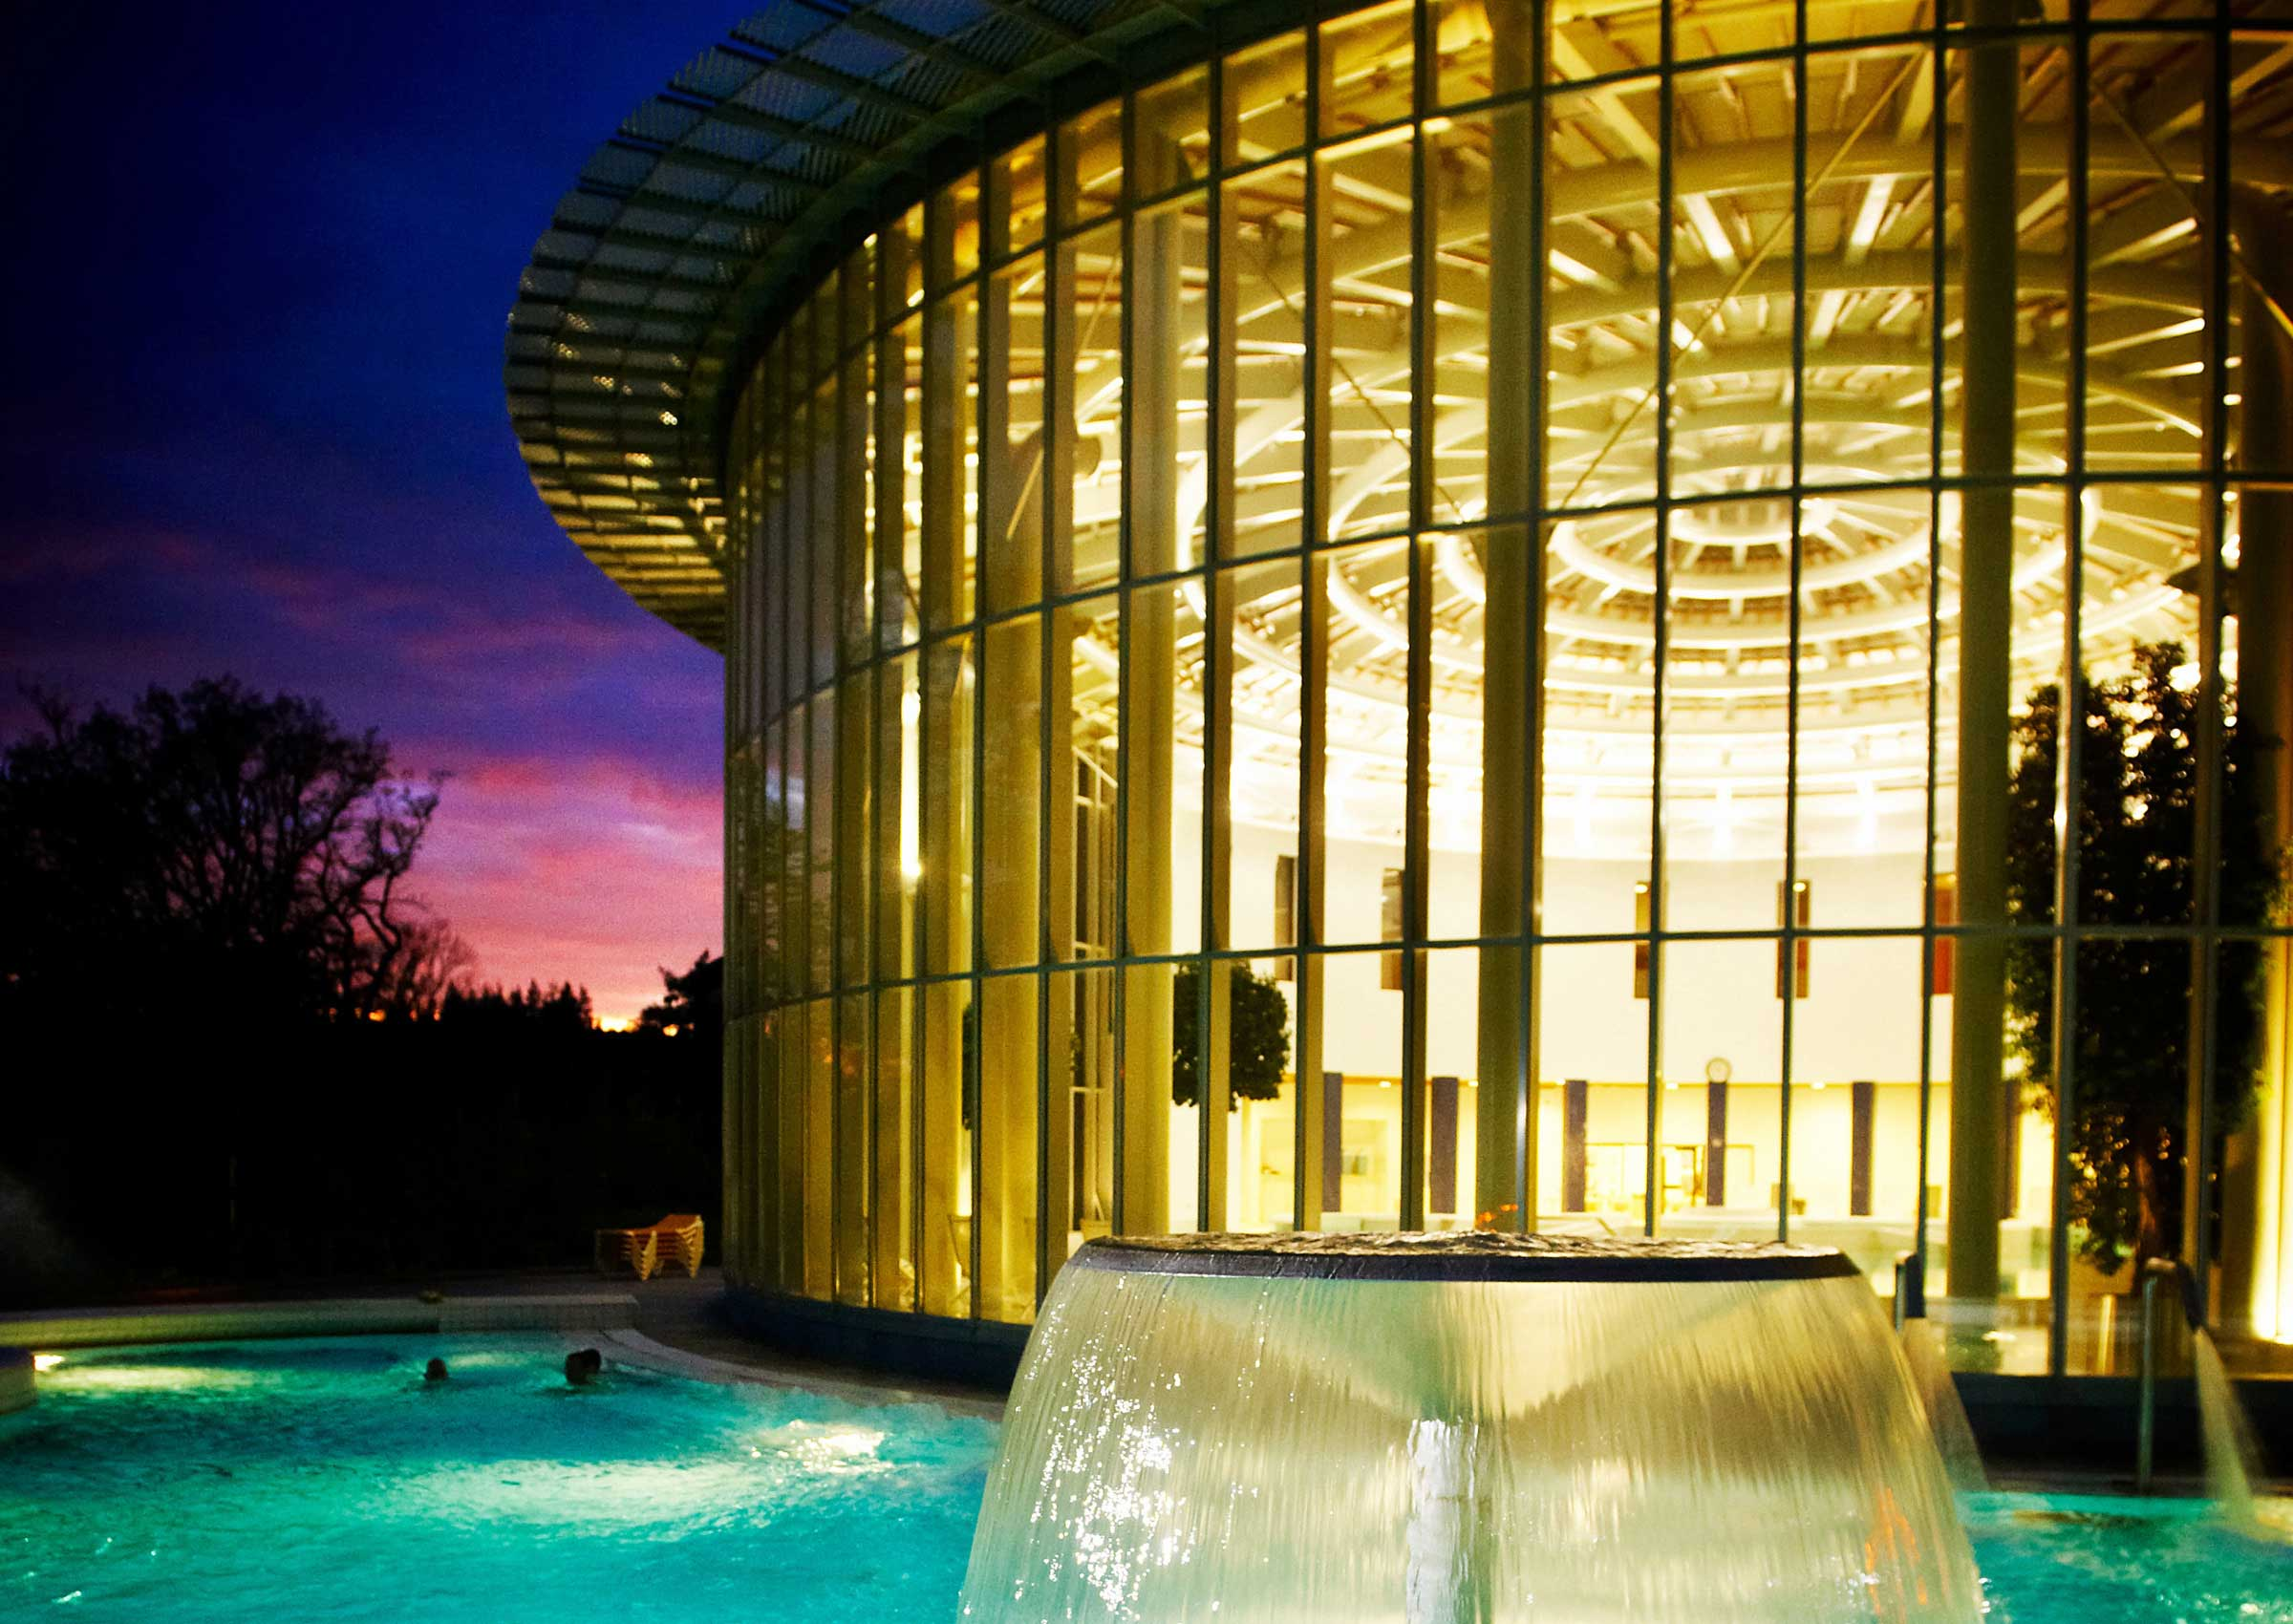 Les thermes de spa sothys for Thermes de spa